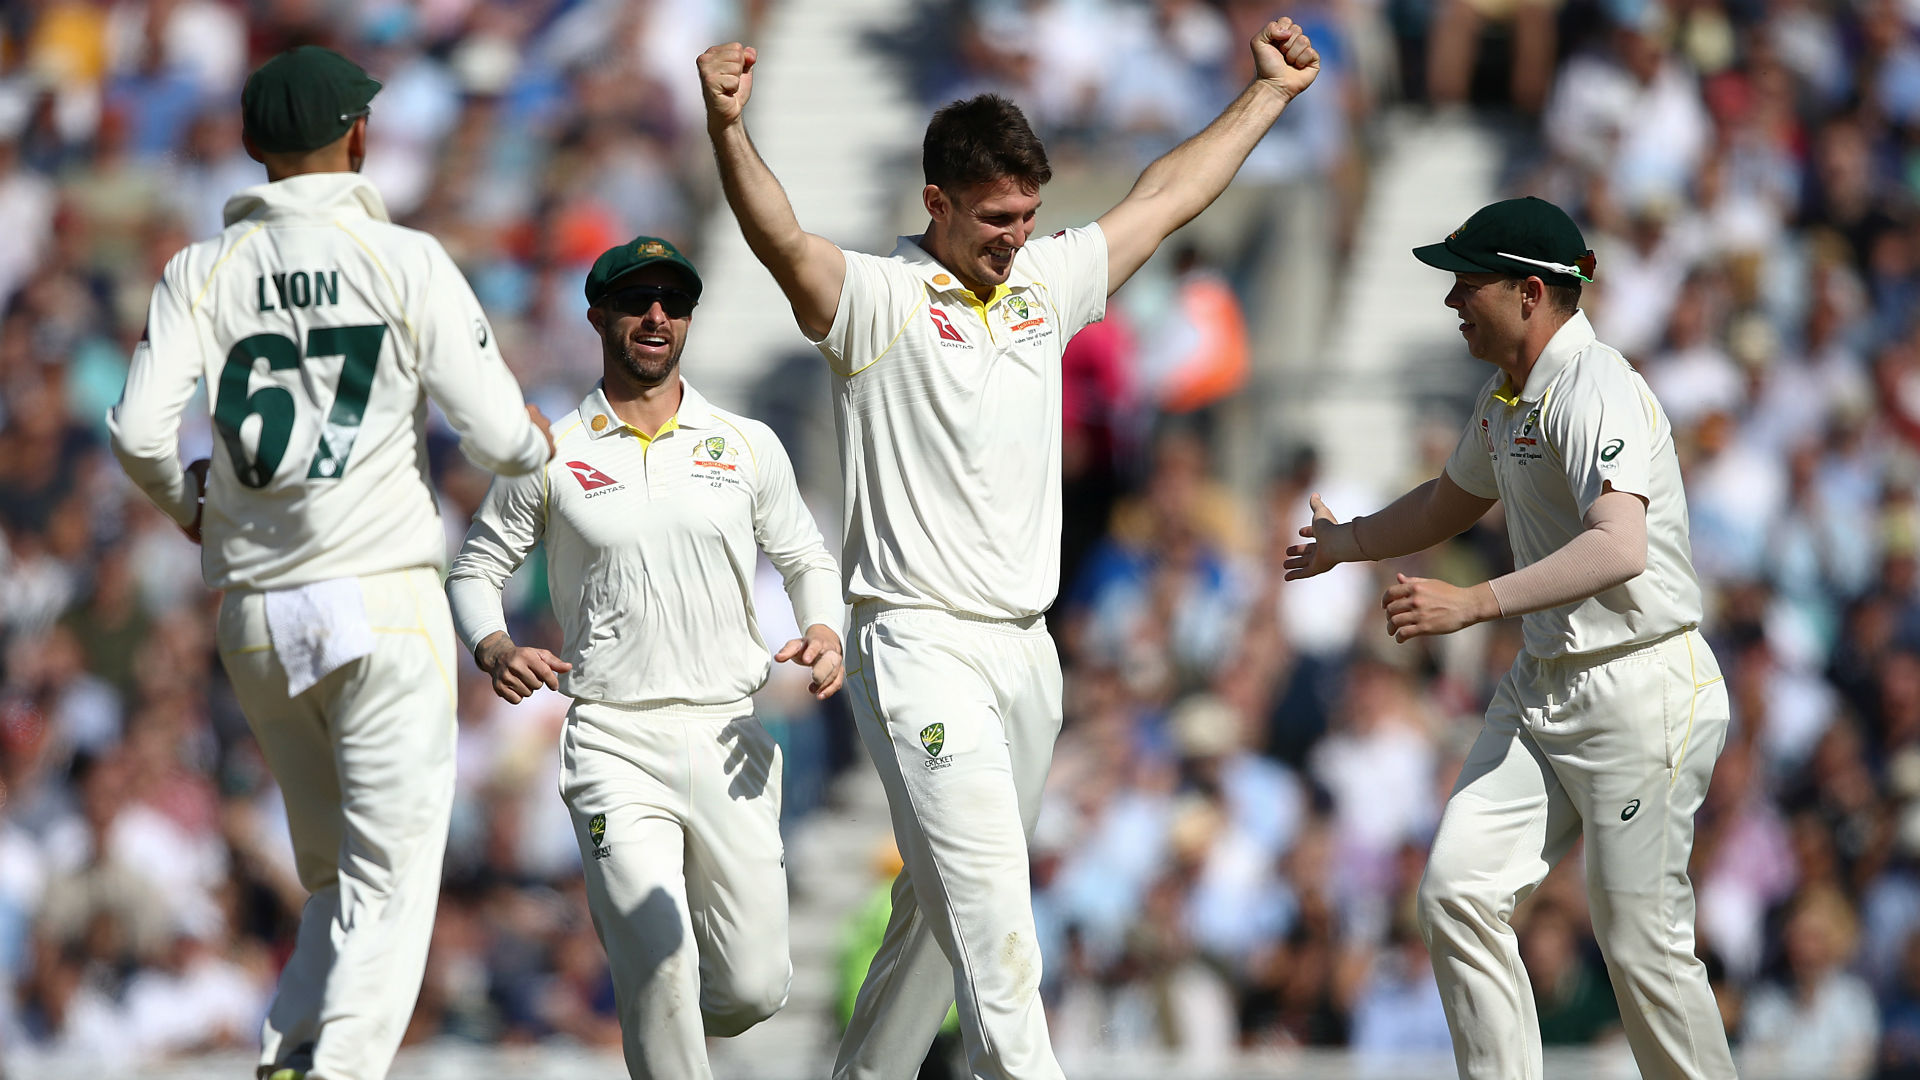 Ashes 2019: England all out for 294, Warner fails again